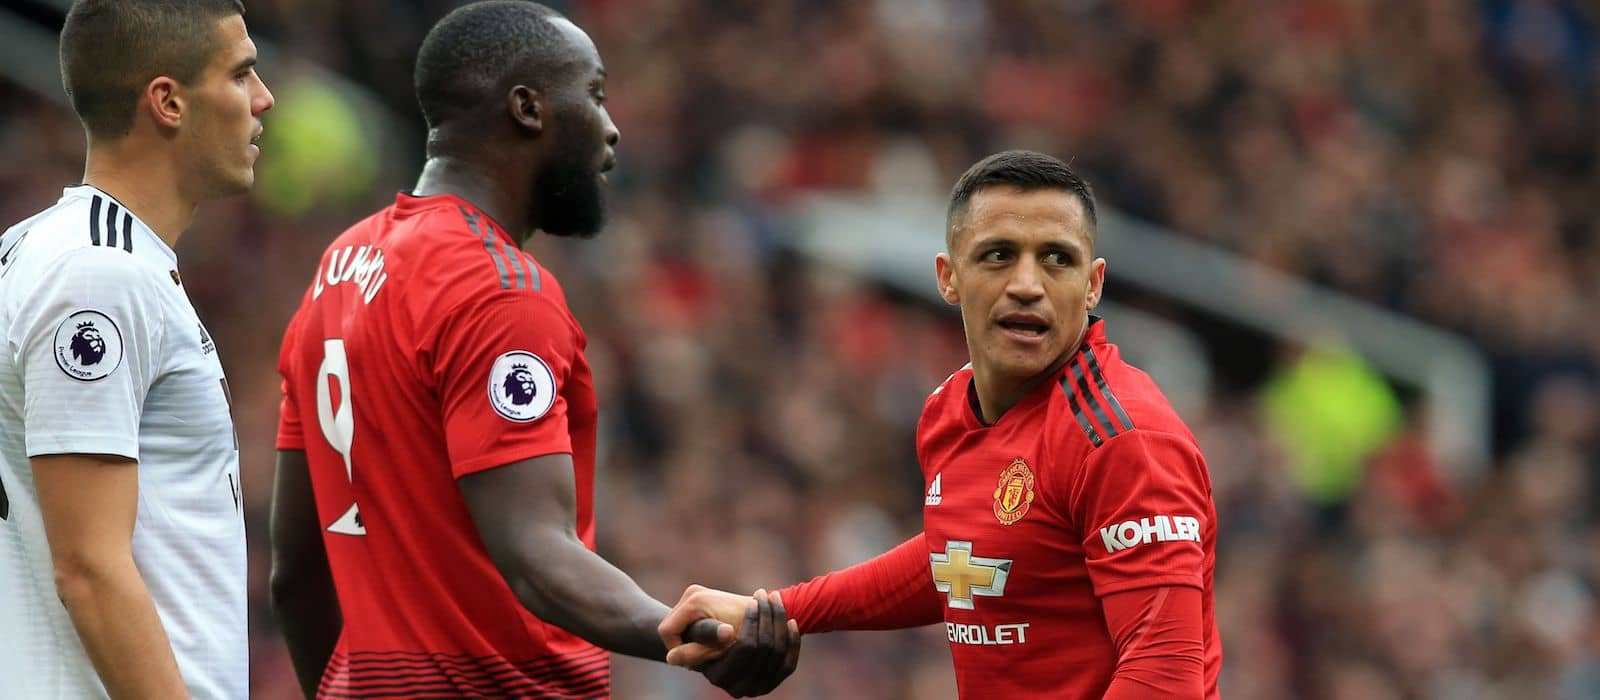 Newcastle United vs Manchester United: Potential XI with Romelu Lukaku and Alexis Sanchez